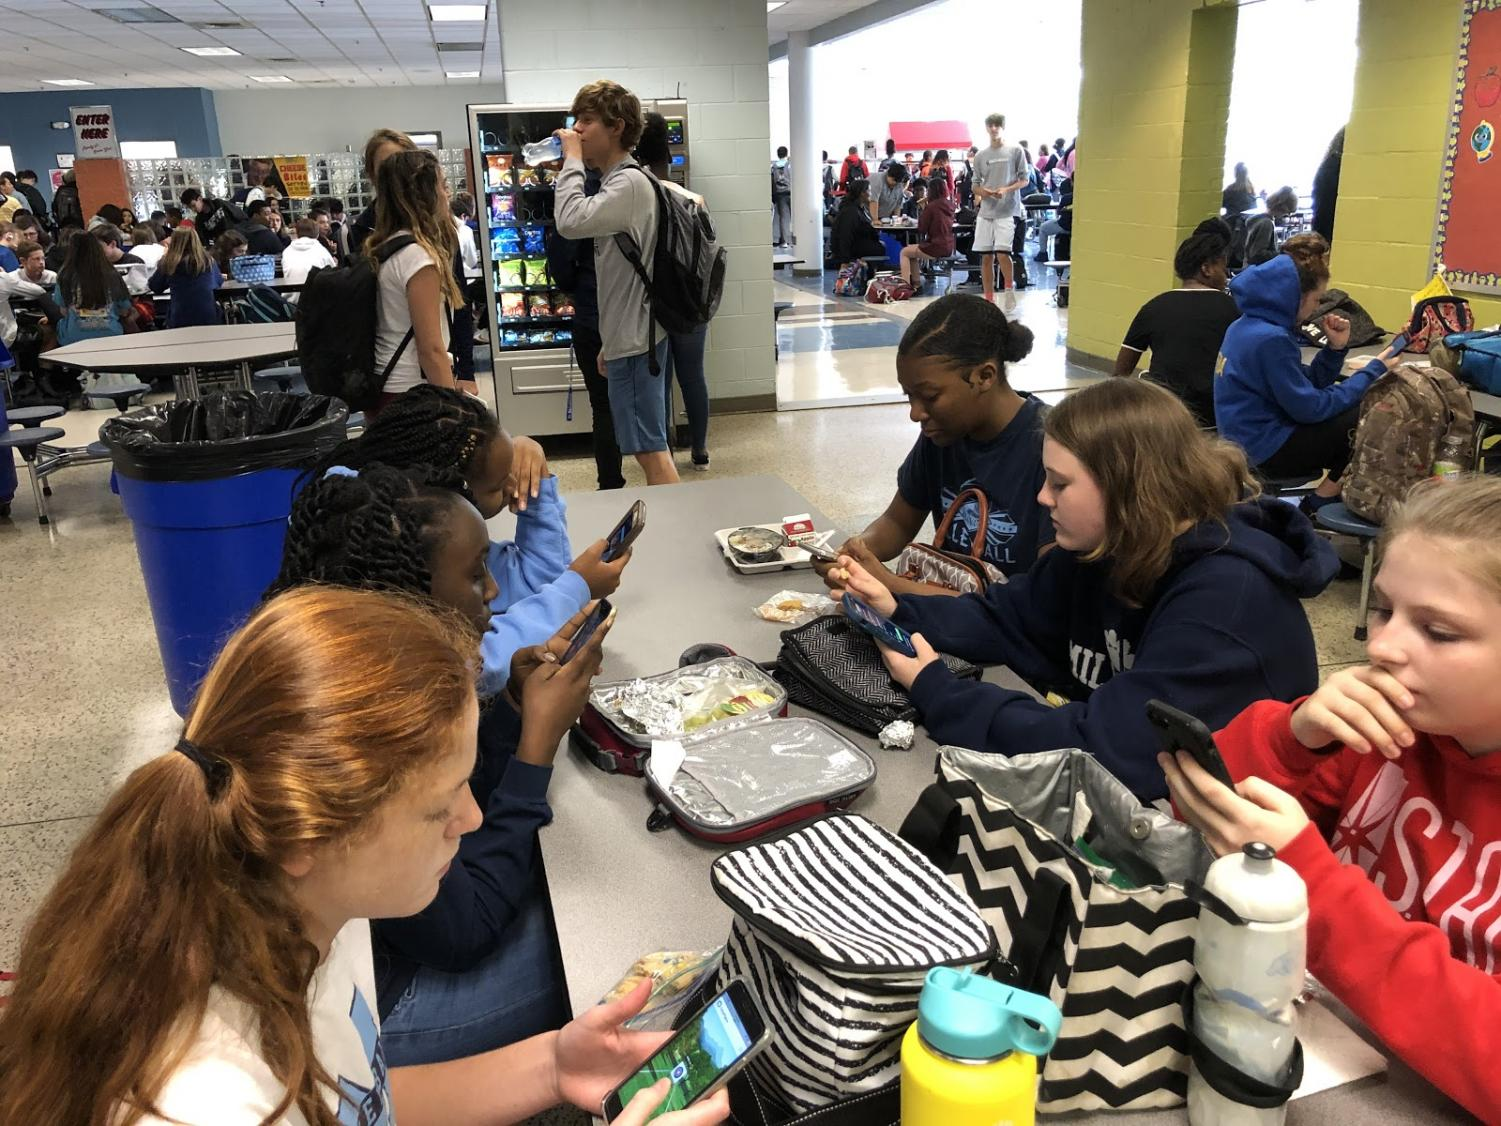 Playing on their phones, Millbrook freshman Hannah Rose Morrow, Mary Katherine Boone, among many others catch up on social media during their lunchtime. As much fun as phones are, they can also be blocking teens from doing schoolwork, chores, and interacting with others, therefore lowering their overall work ethic and motivation for everyday tasks.